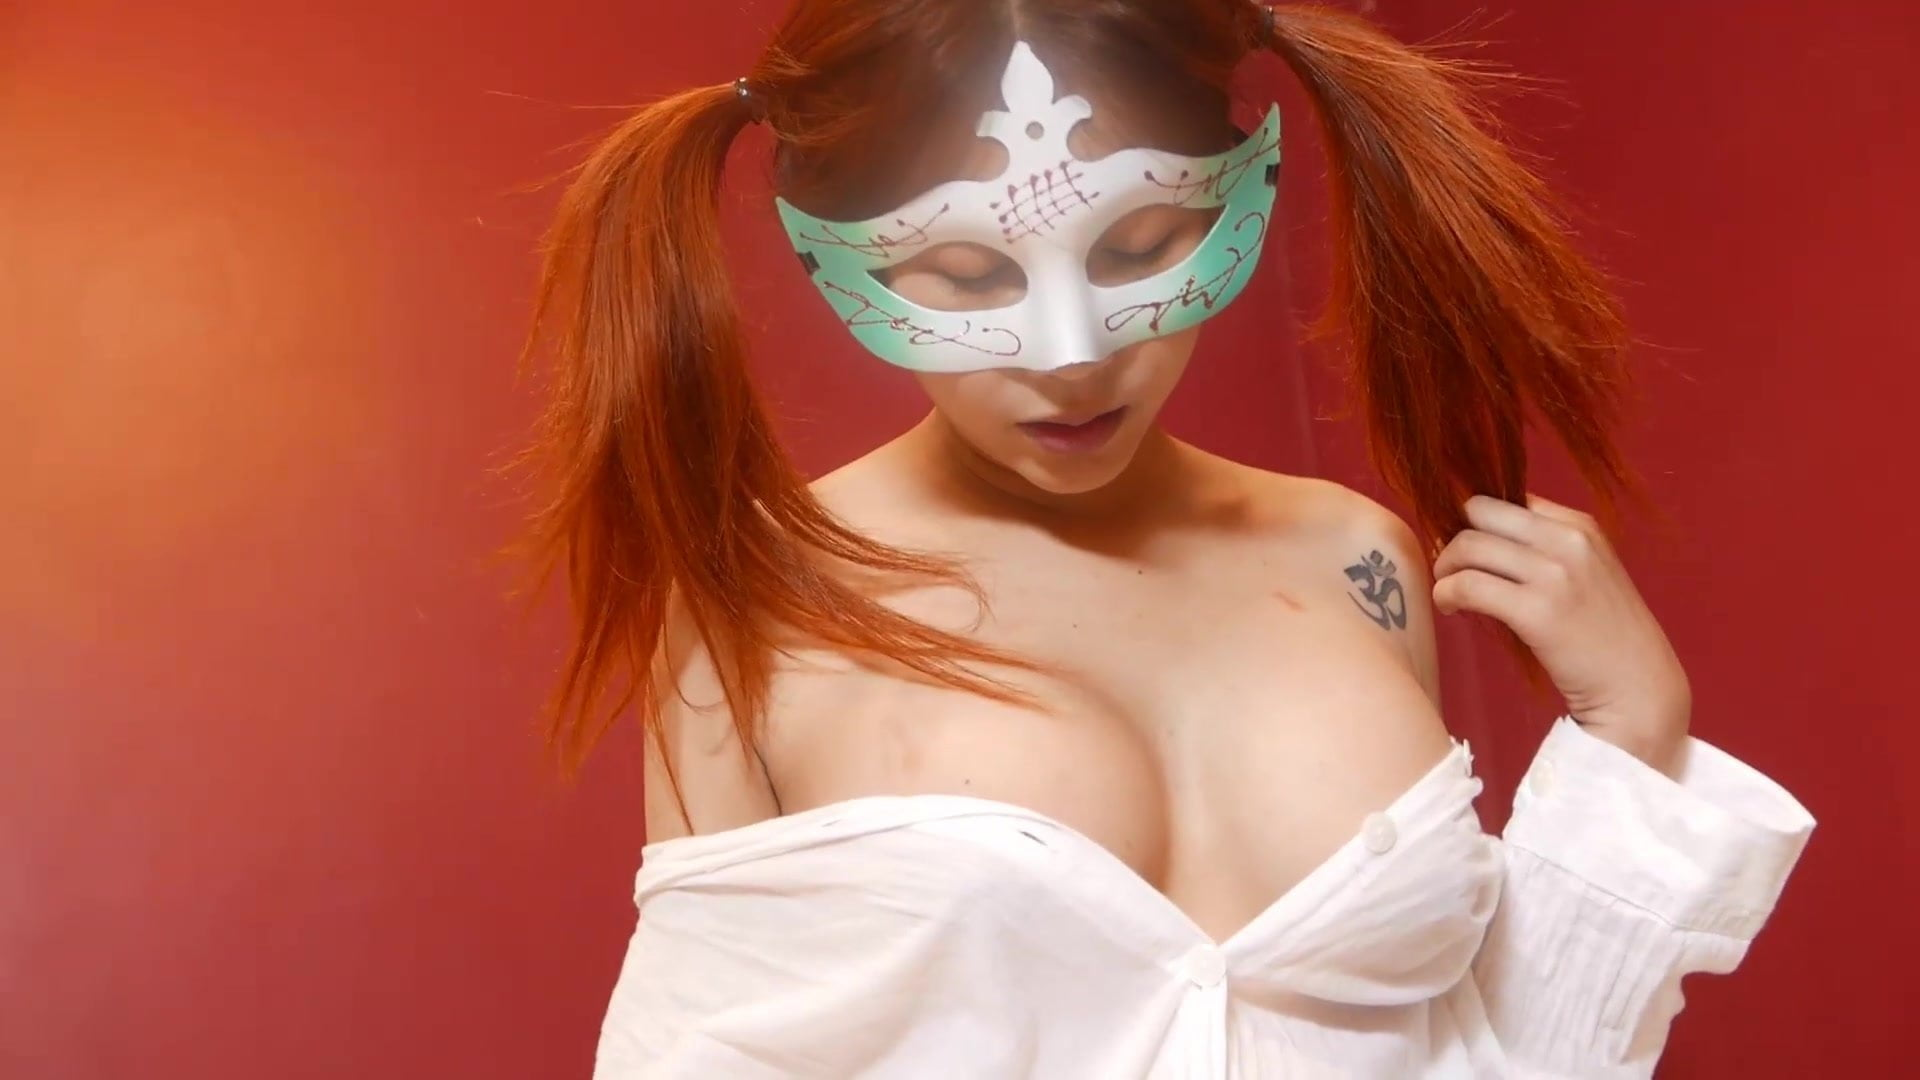 Masks Galore along with her vlog video exhibiting her tight titties